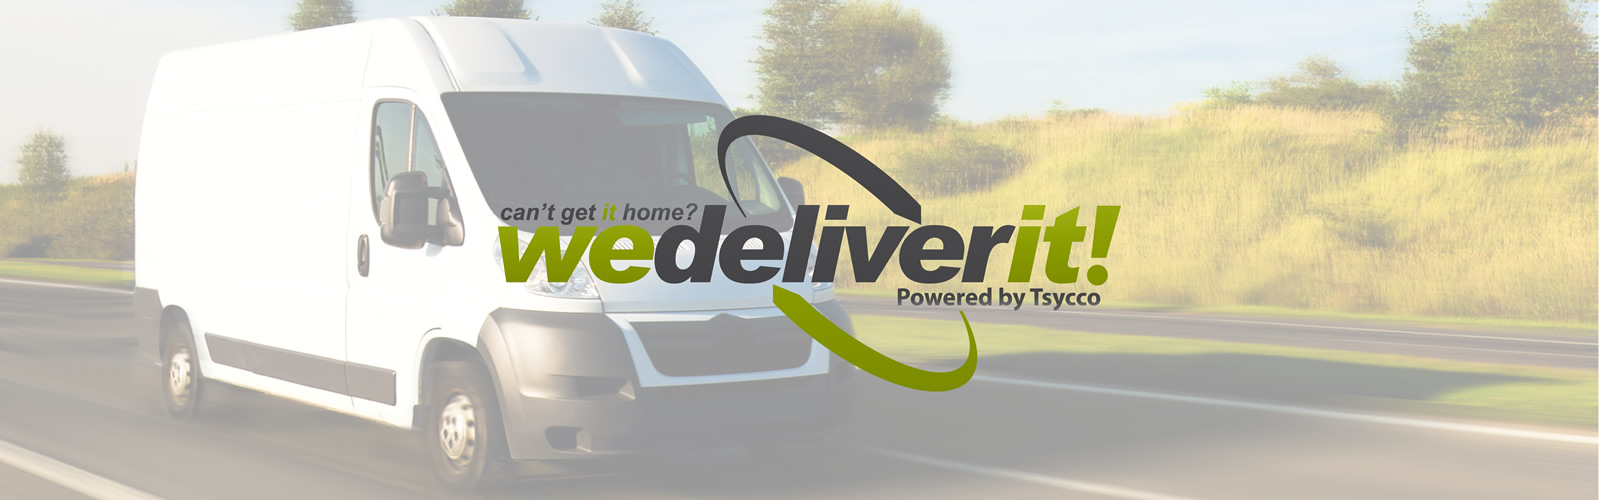 we deliver it